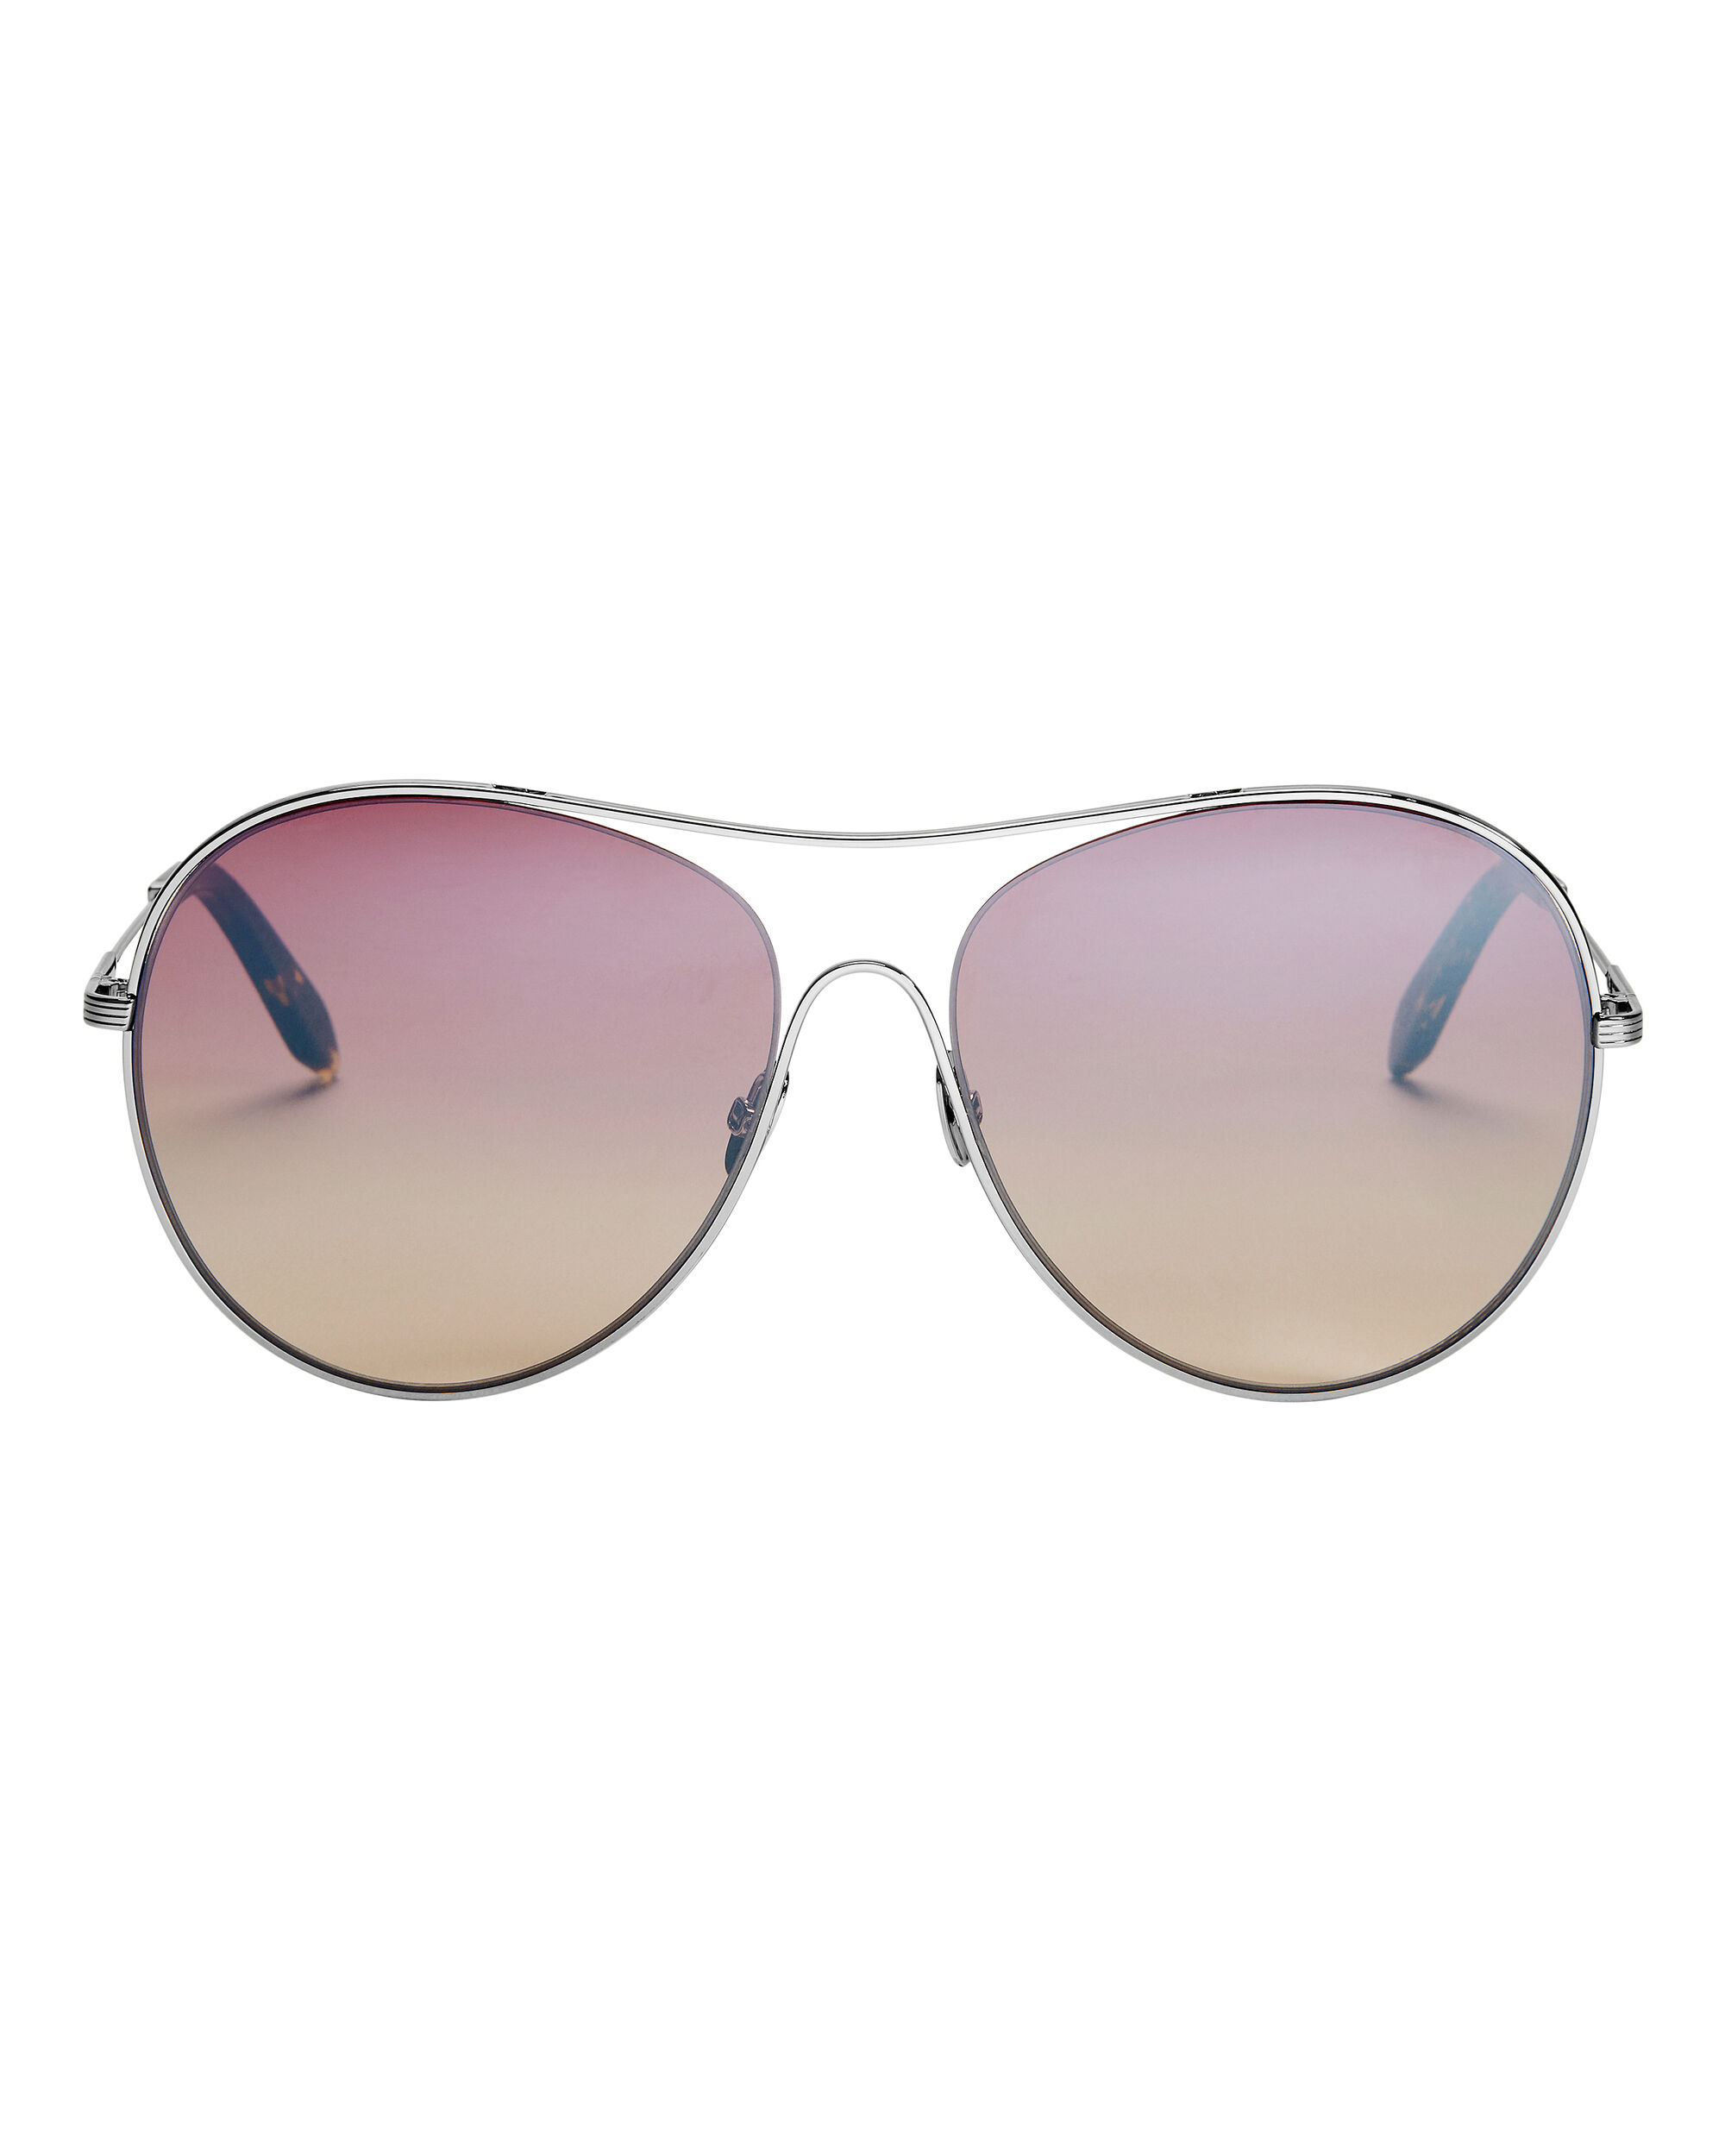 Gold Loop Round Sunglasses, METALLIC, hi-res